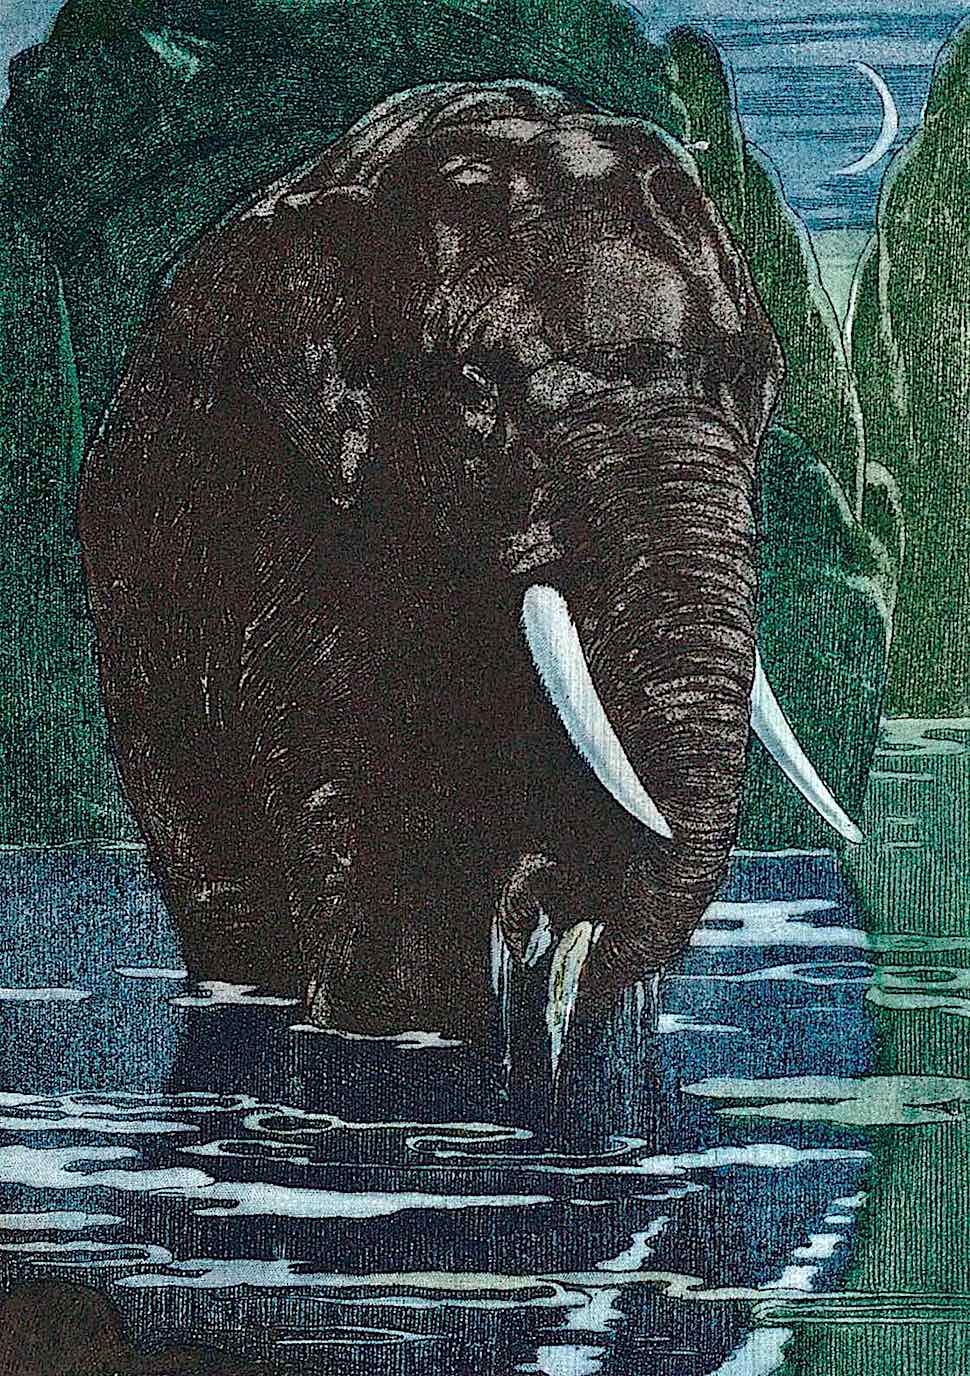 M. De Becque, an elephant in a river at night in color